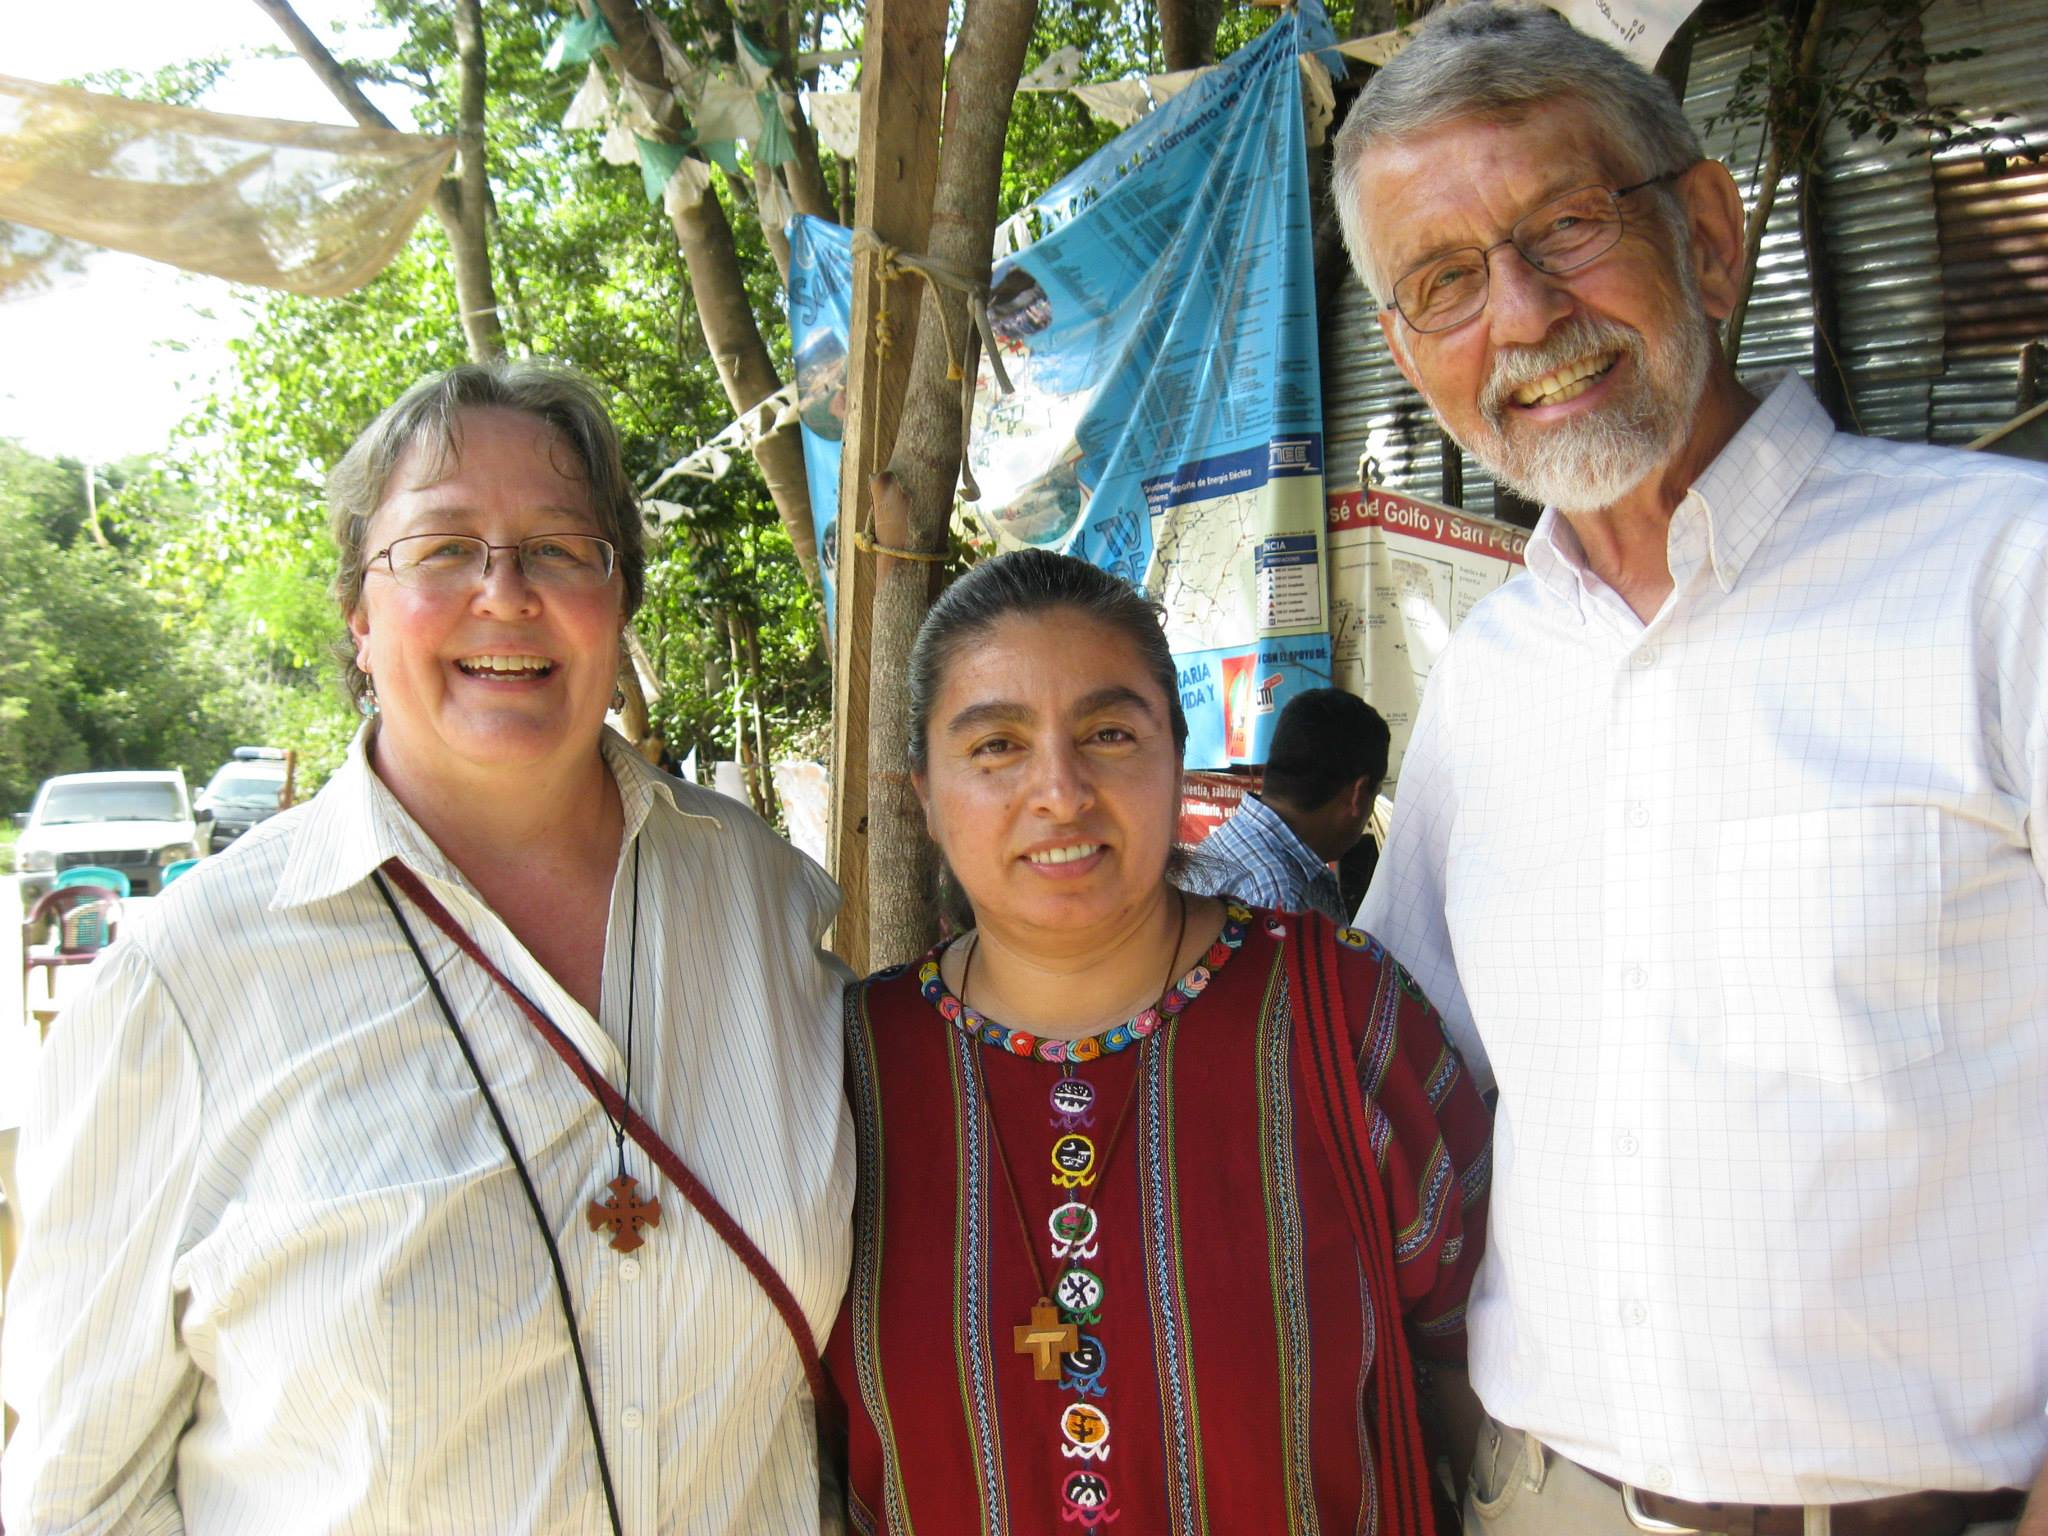 My worlds converged briefly when my Whitworth professor the Rev. Dr. Don Liebert visited Guatemala in 2015 and attended mass with me in the peaceful mining resistance in La Puya. We were hosted by Carmen Martínez, a former nun and key facilitator/accompanier in that resistance.